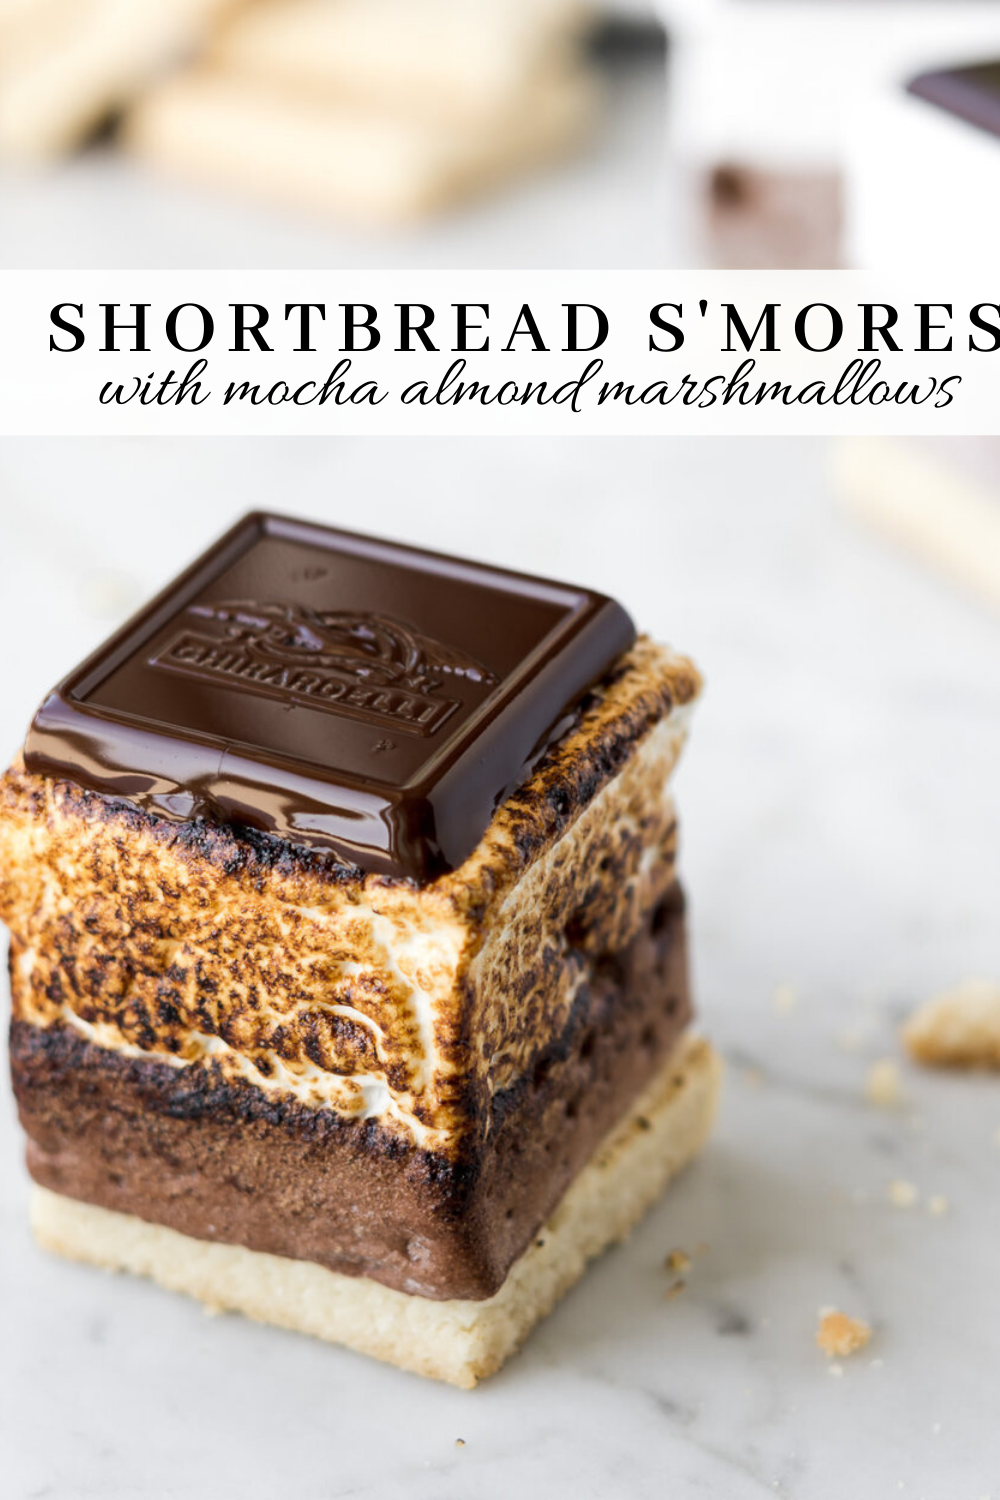 homemade mocha almond marshmallow and shortbread s'mores - With Spice